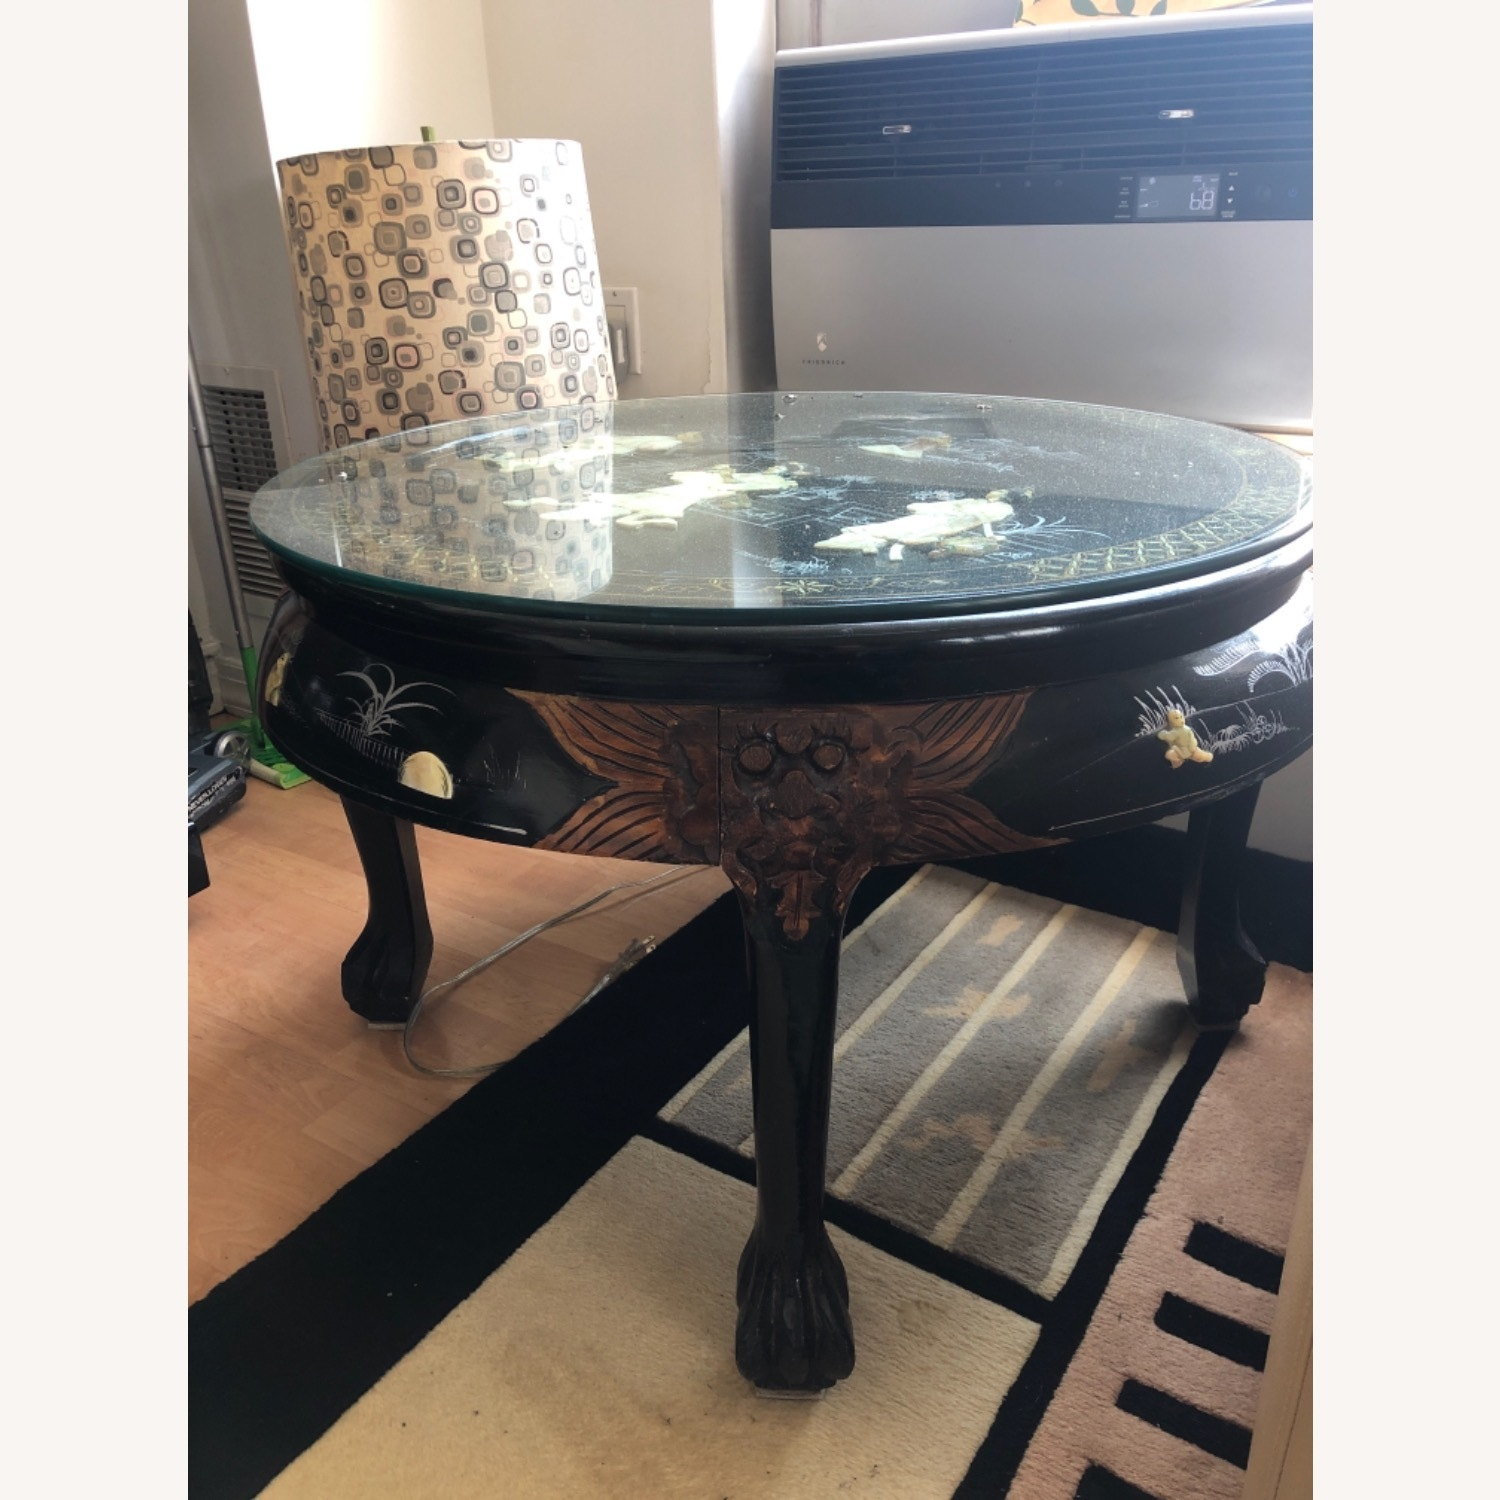 Chinese lacquered Inlaid Coffee Table - image-2